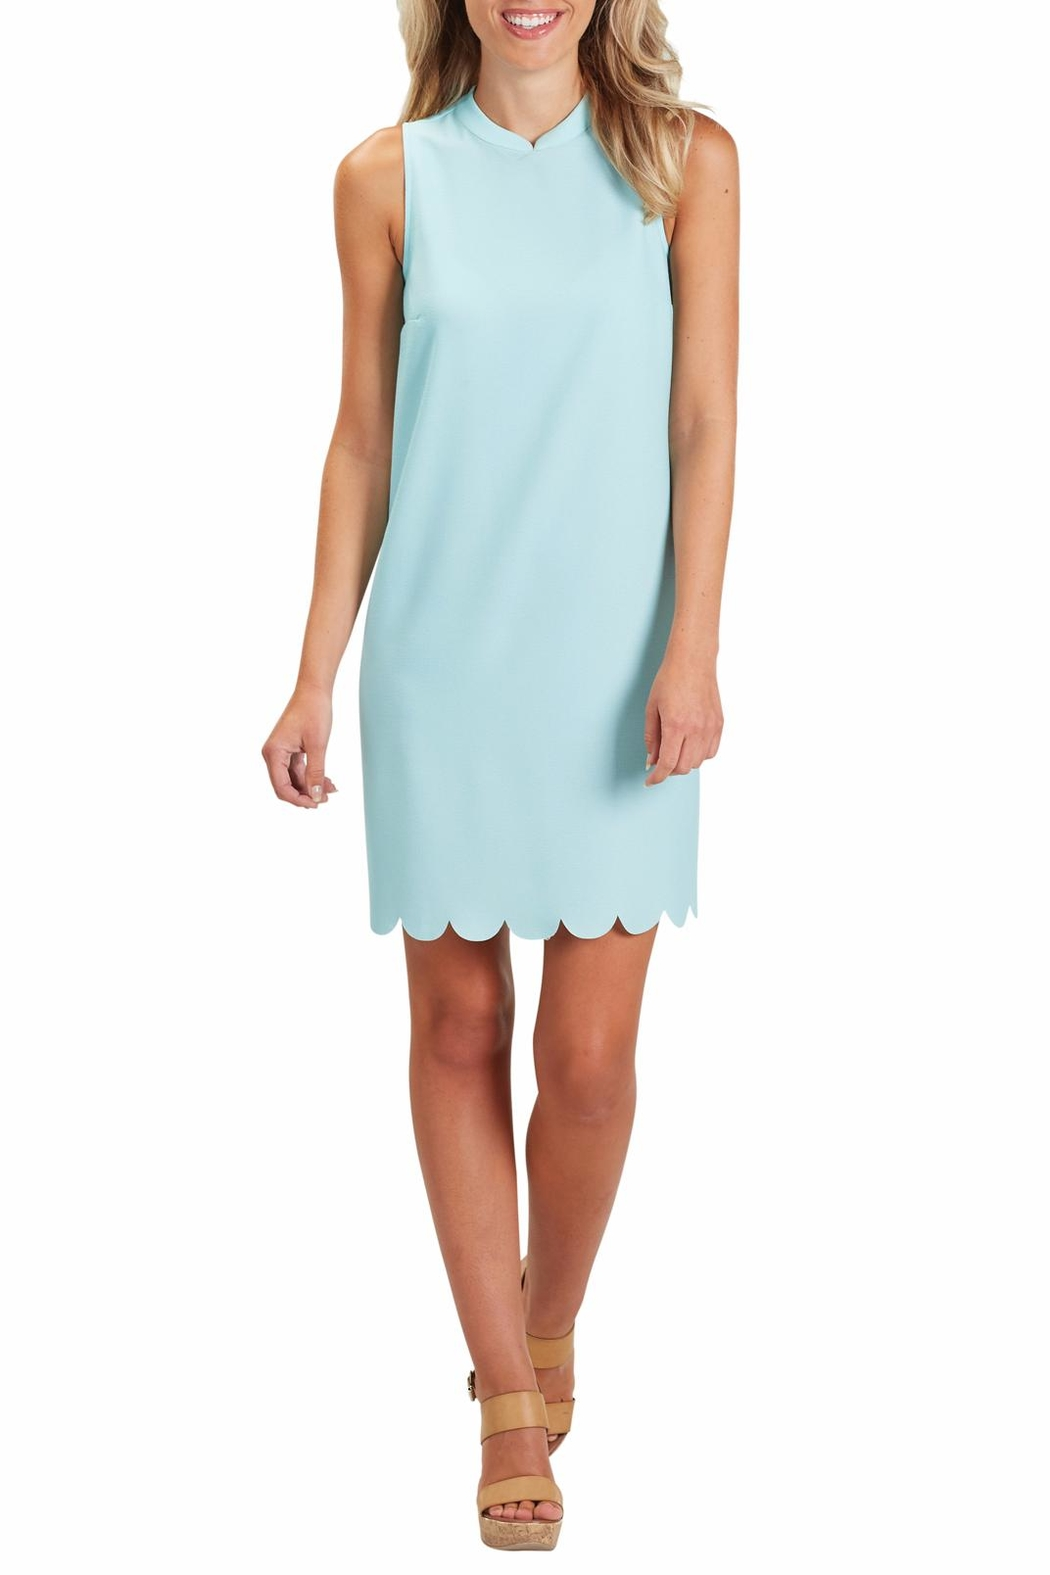 Mud Pie Britain Scalloped Dress - Side Cropped Image